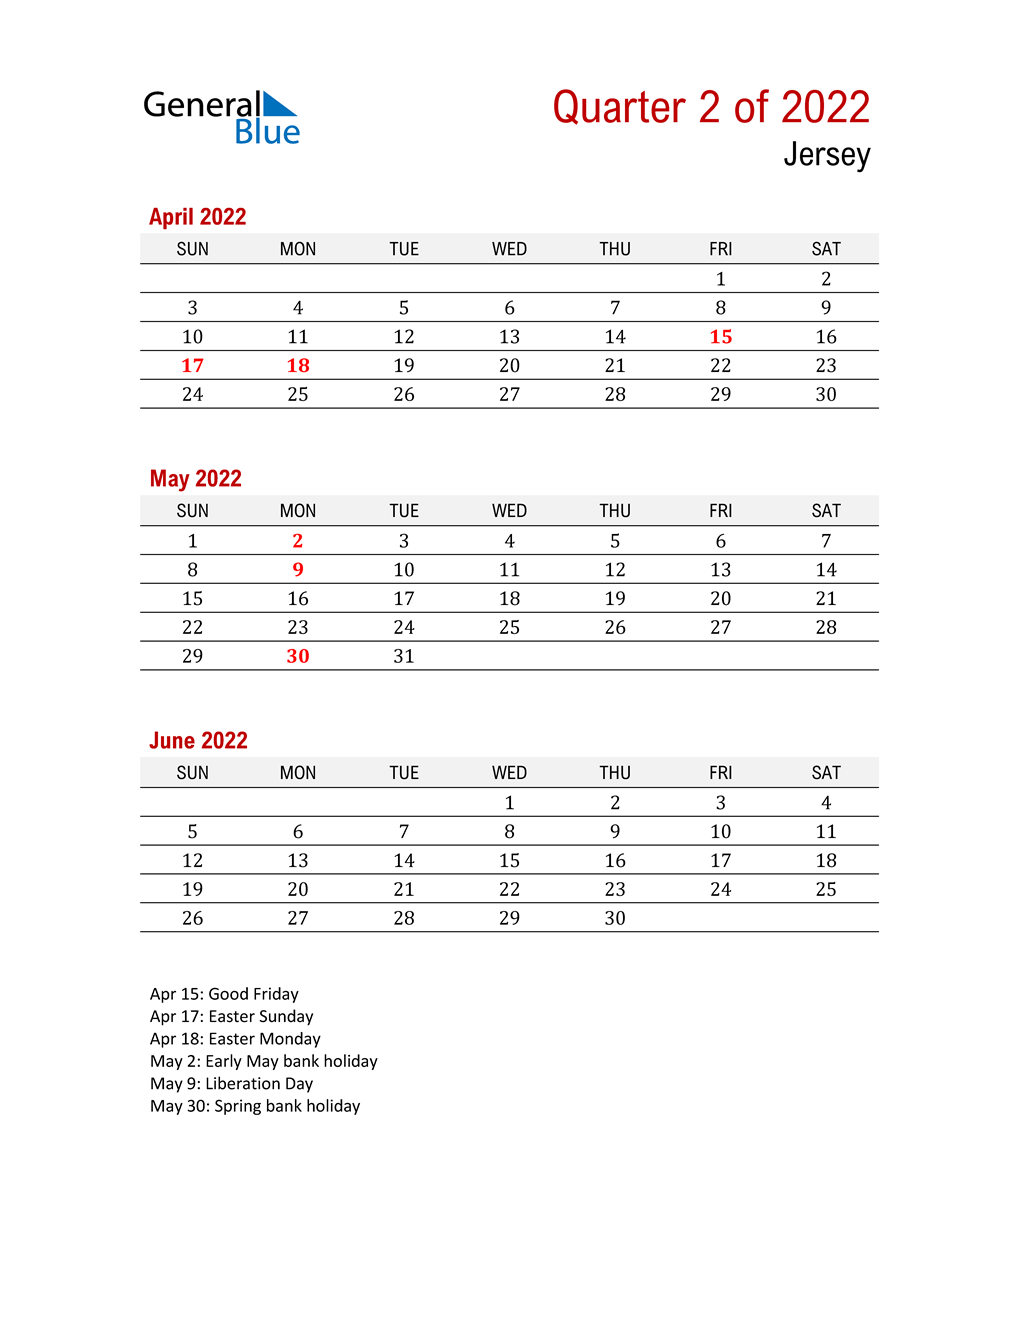 Printable Three Month Calendar for Jersey